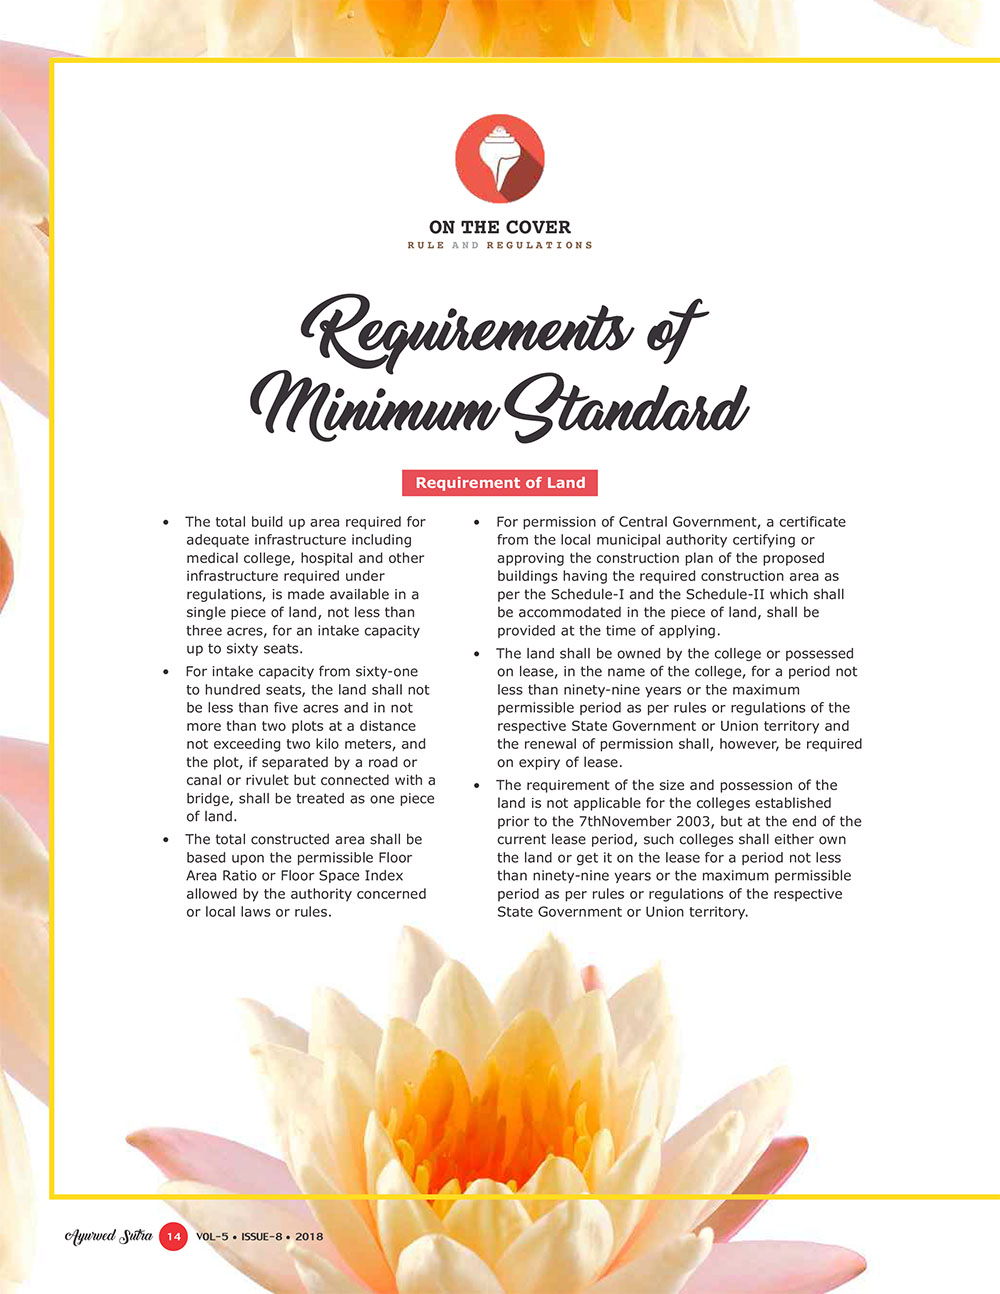 Ayurvedsutra Vol 05 issue 08 16 - Requirements of Minimum Standard